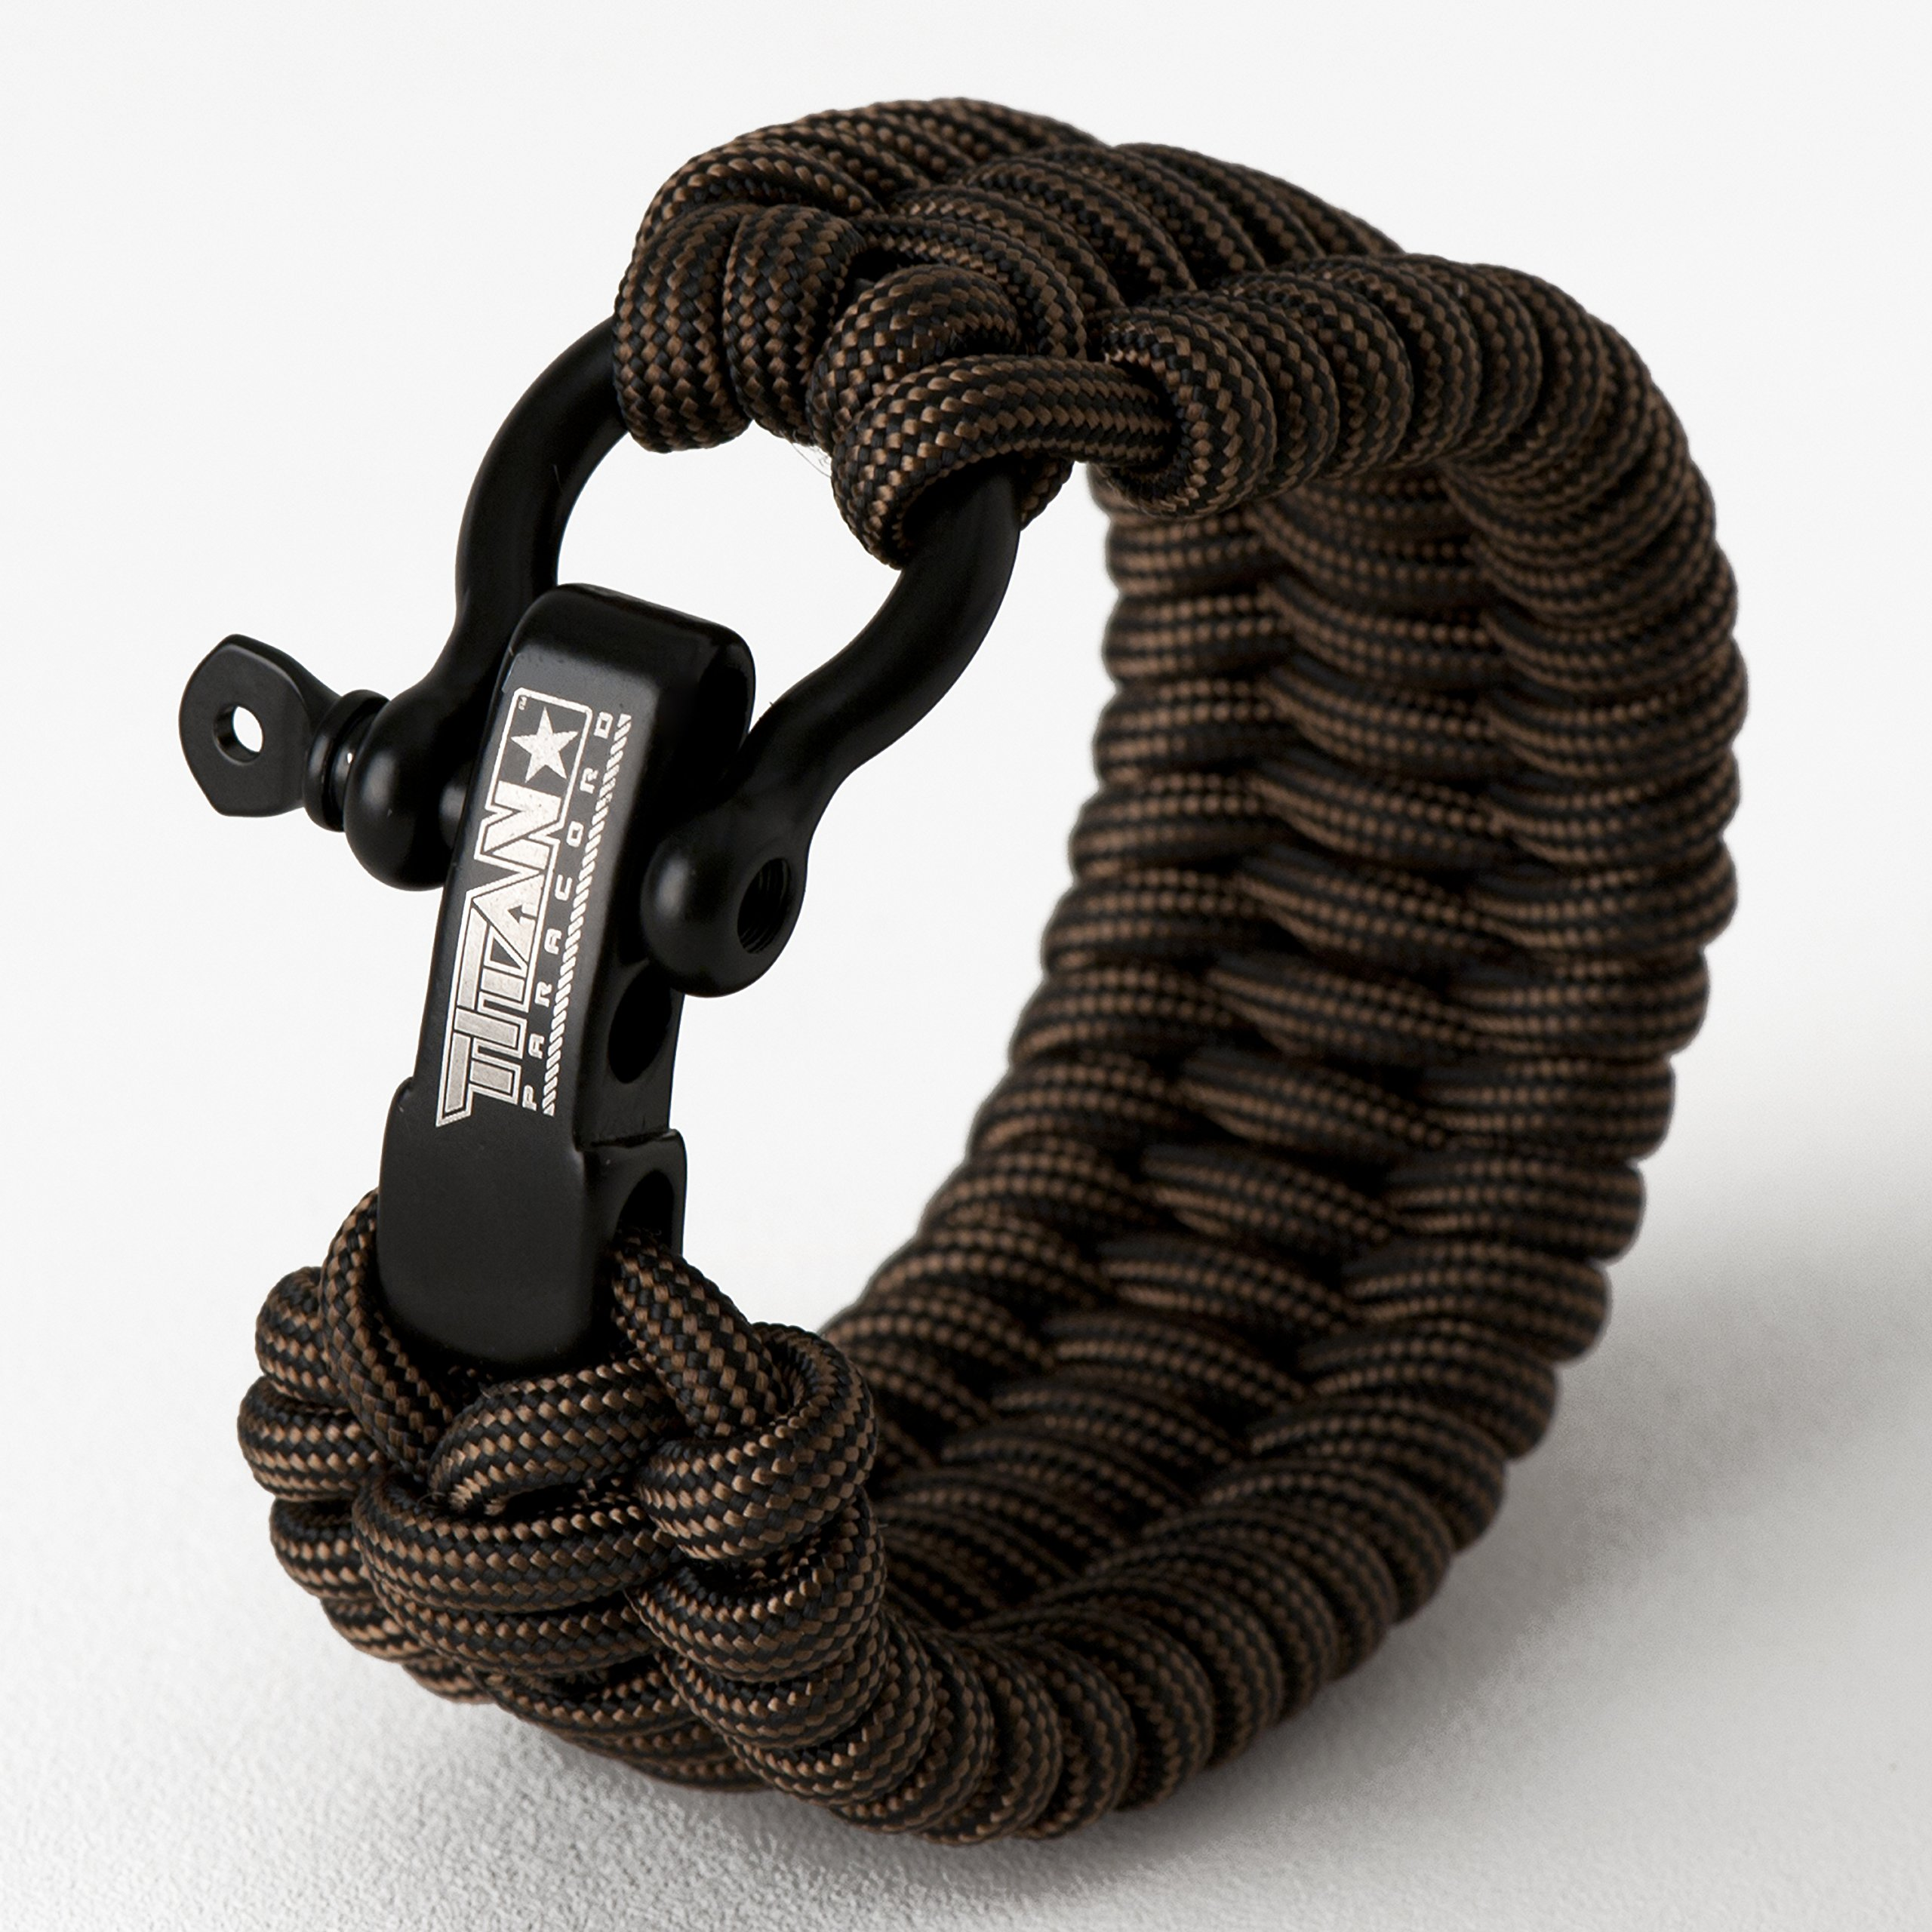 Titan Paracord Survival Bracelet | Bronze | Large (Fits 8'' - 9'' Wrist) | Made with Authentic Patented SurvivorCord (550 Paracord, Fishing line, Snare Wire, and Waxed Jute for Fires).